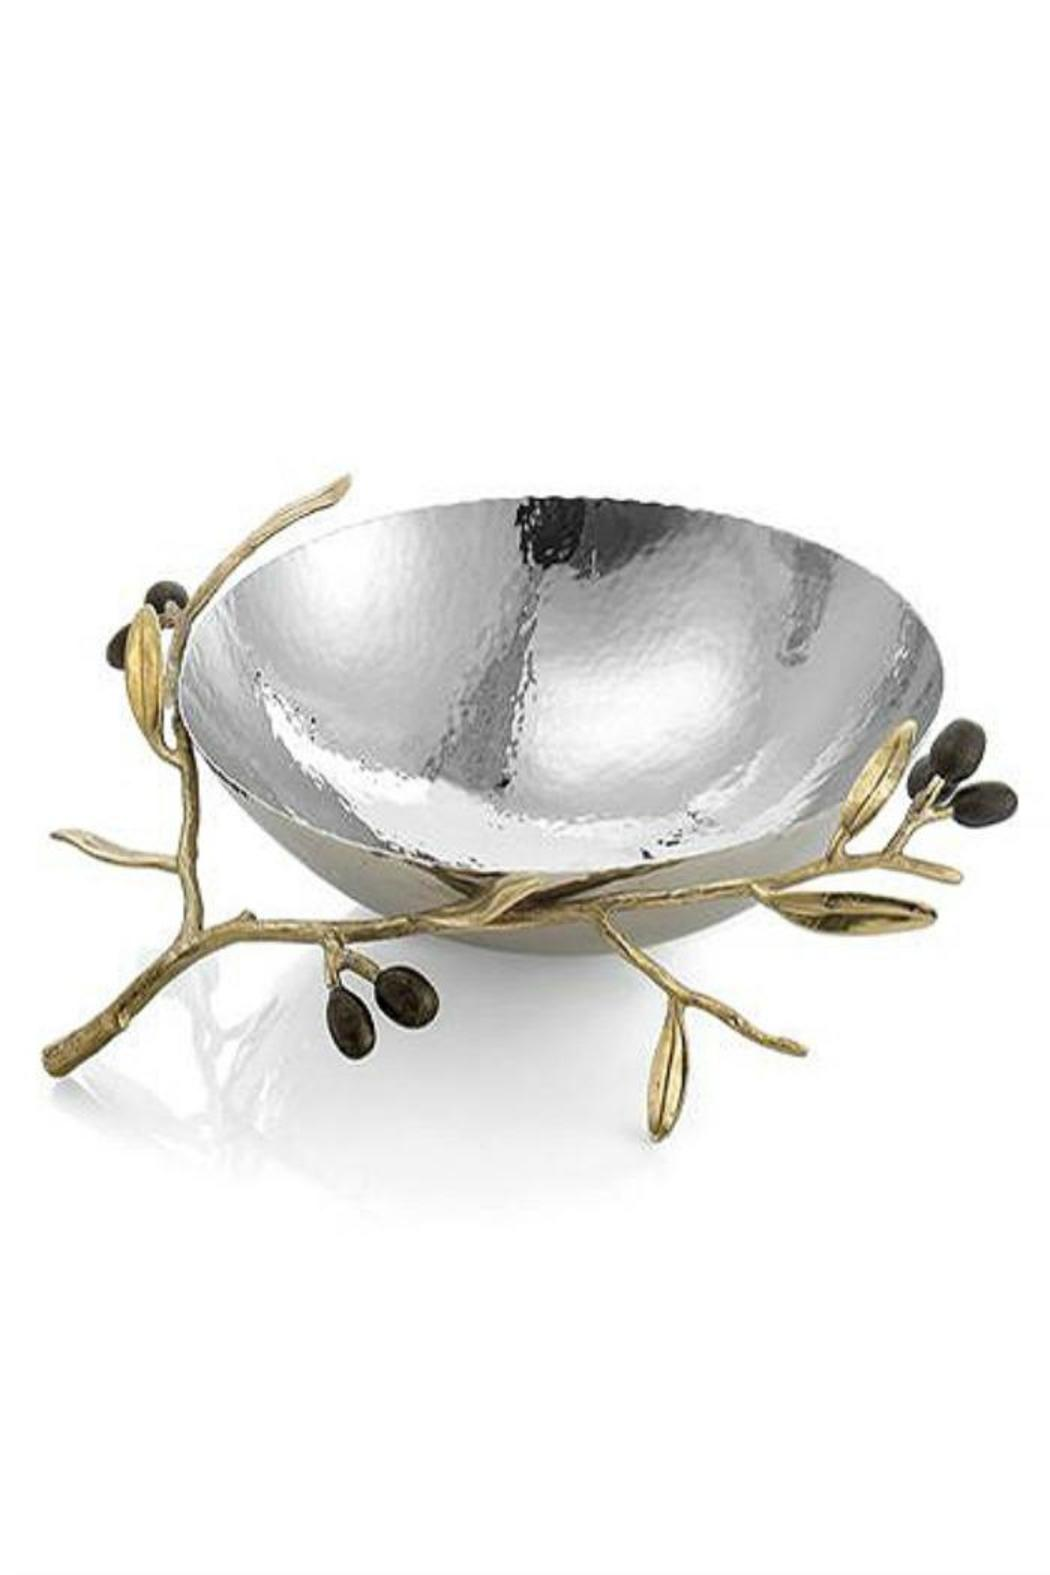 Michael Aram Olive Branch Bowl From Brooklyn By Silver